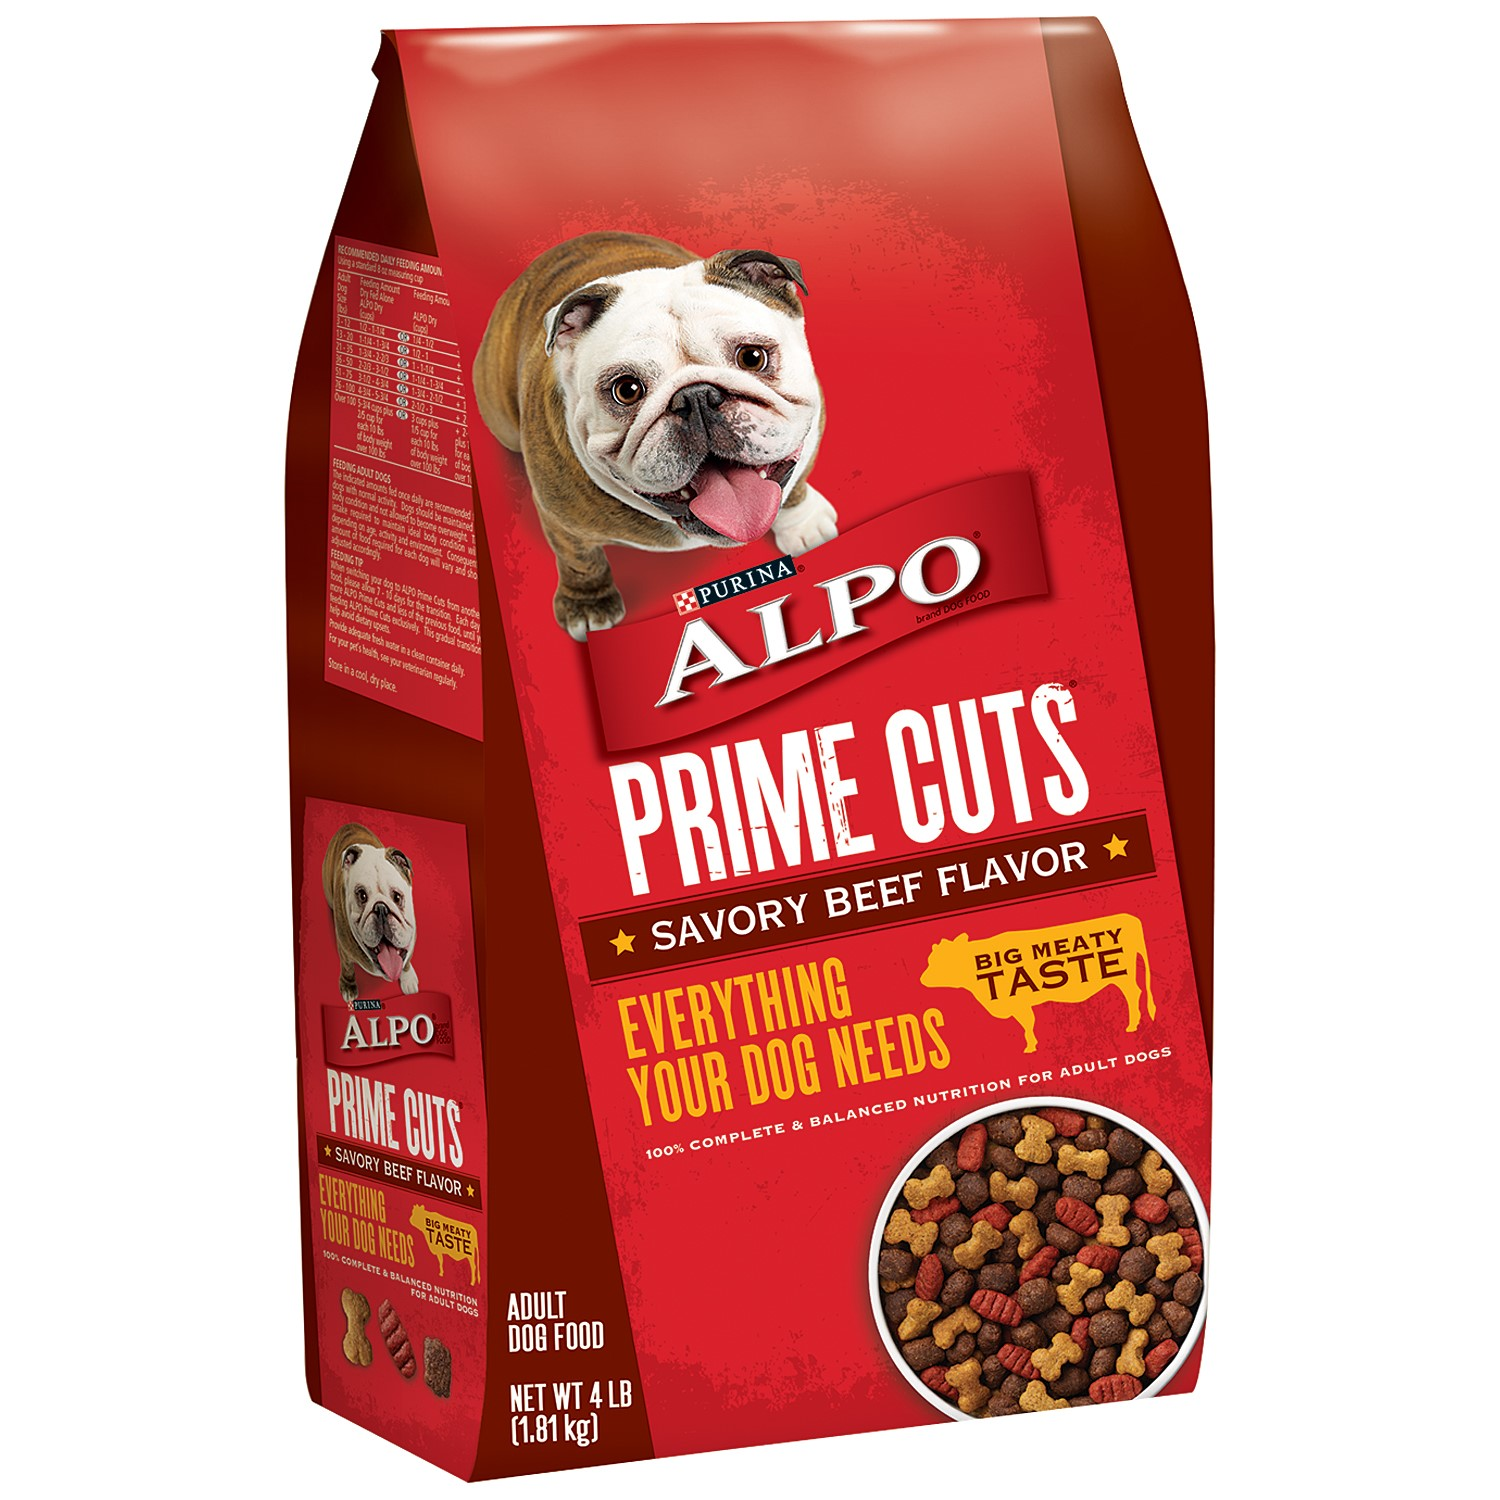 Purina Alpo Prime Cuts Savory Beef Flavor Dry Dog Food, 4 Lb.